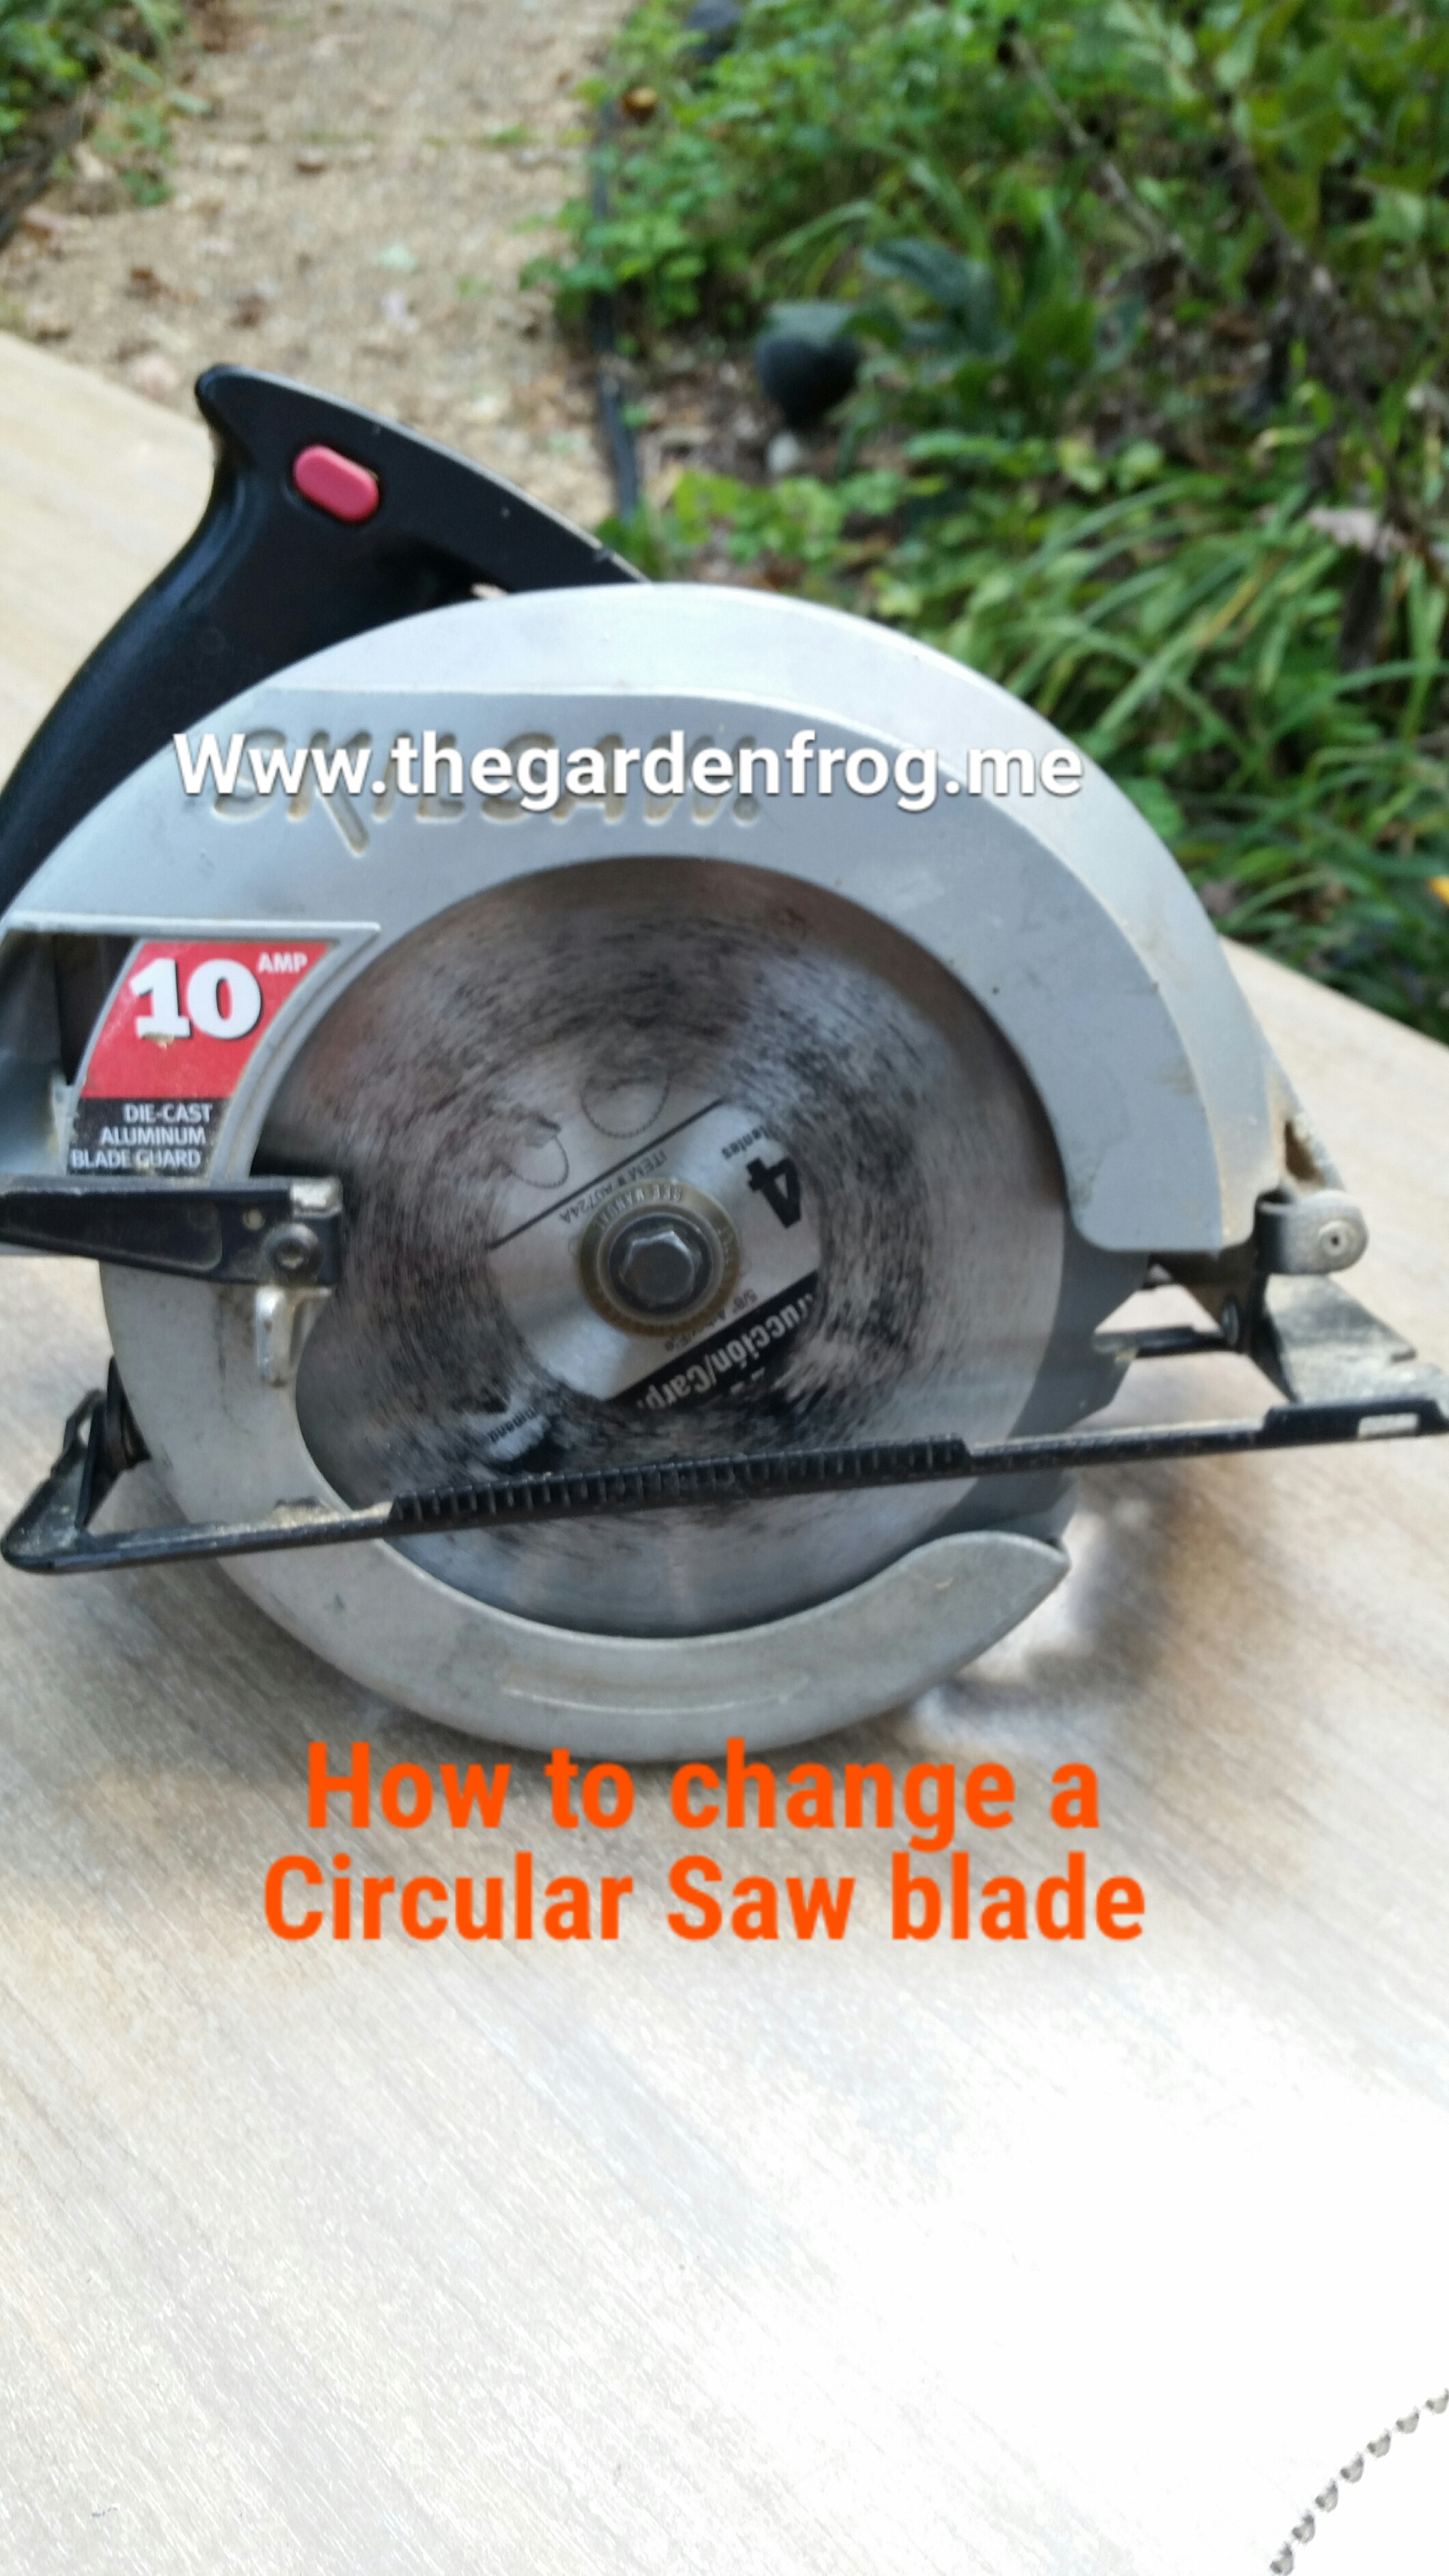 How to change a circular saw blade how to change a circular saw blade greentooth Images